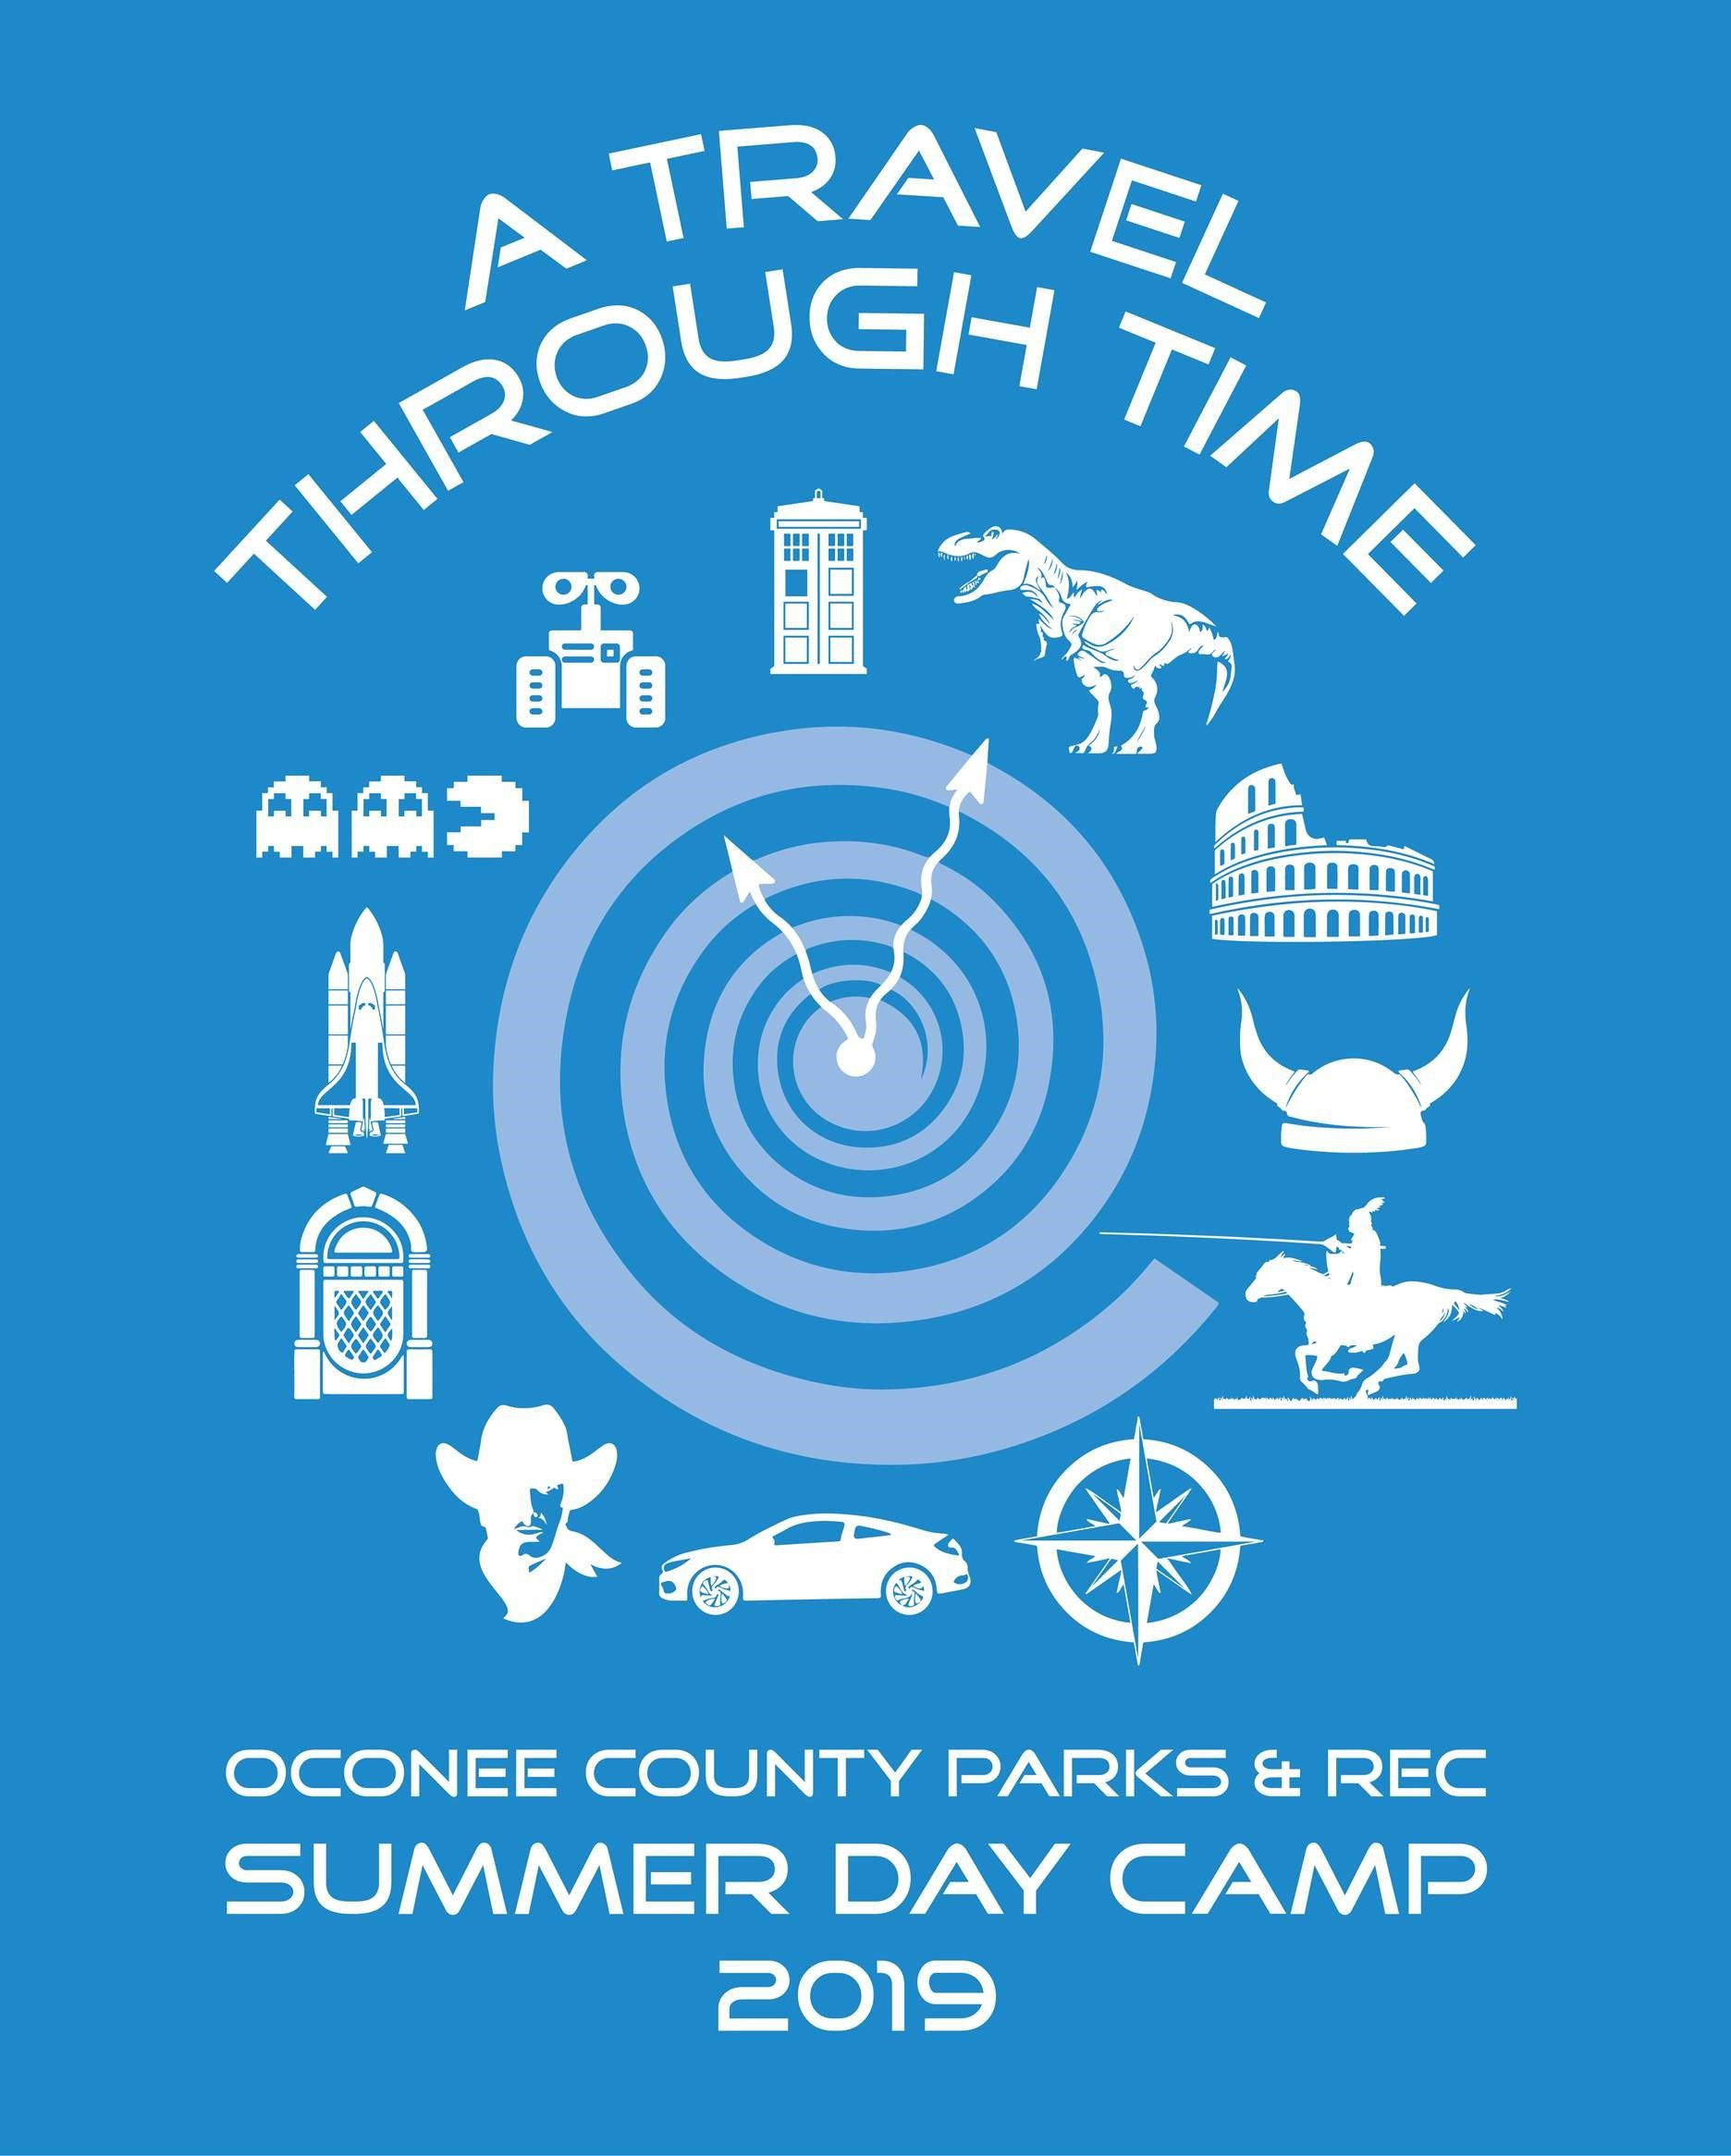 SummerCamp_Travel_Through_Time